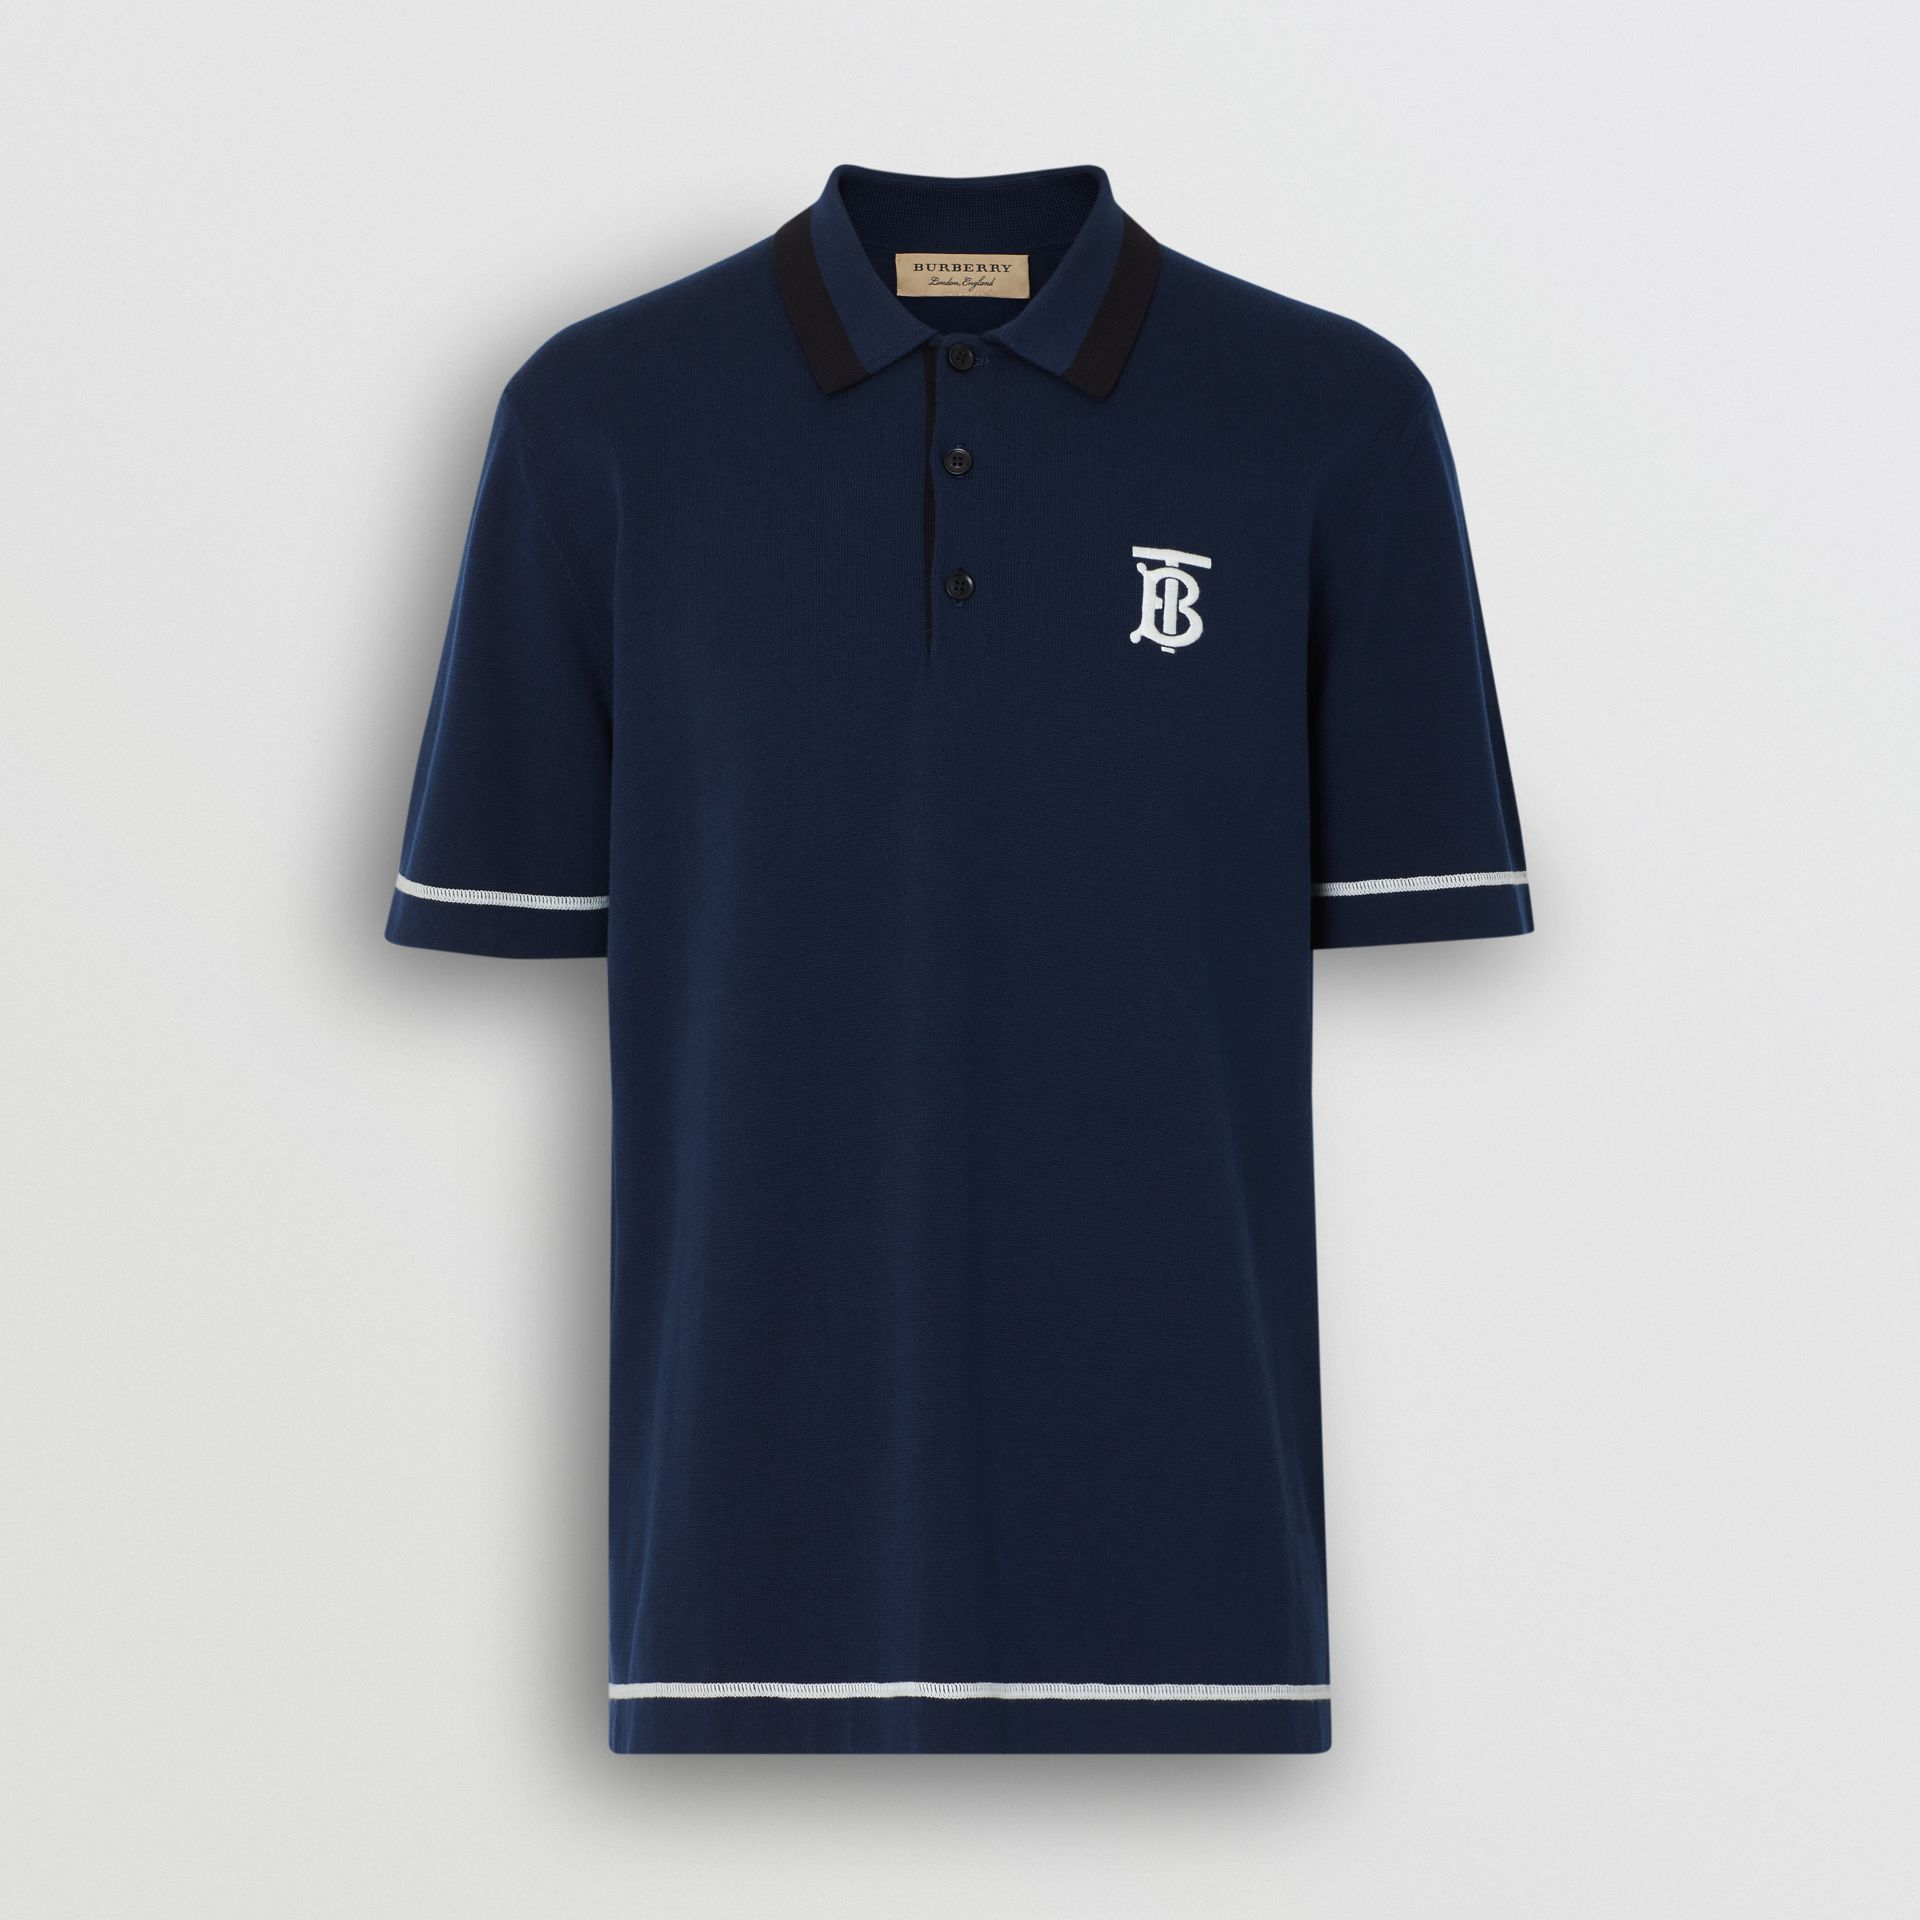 Monogram Motif Tipped Cotton Polo Shirt in Navy - Men | Burberry Hong Kong - gallery image 3